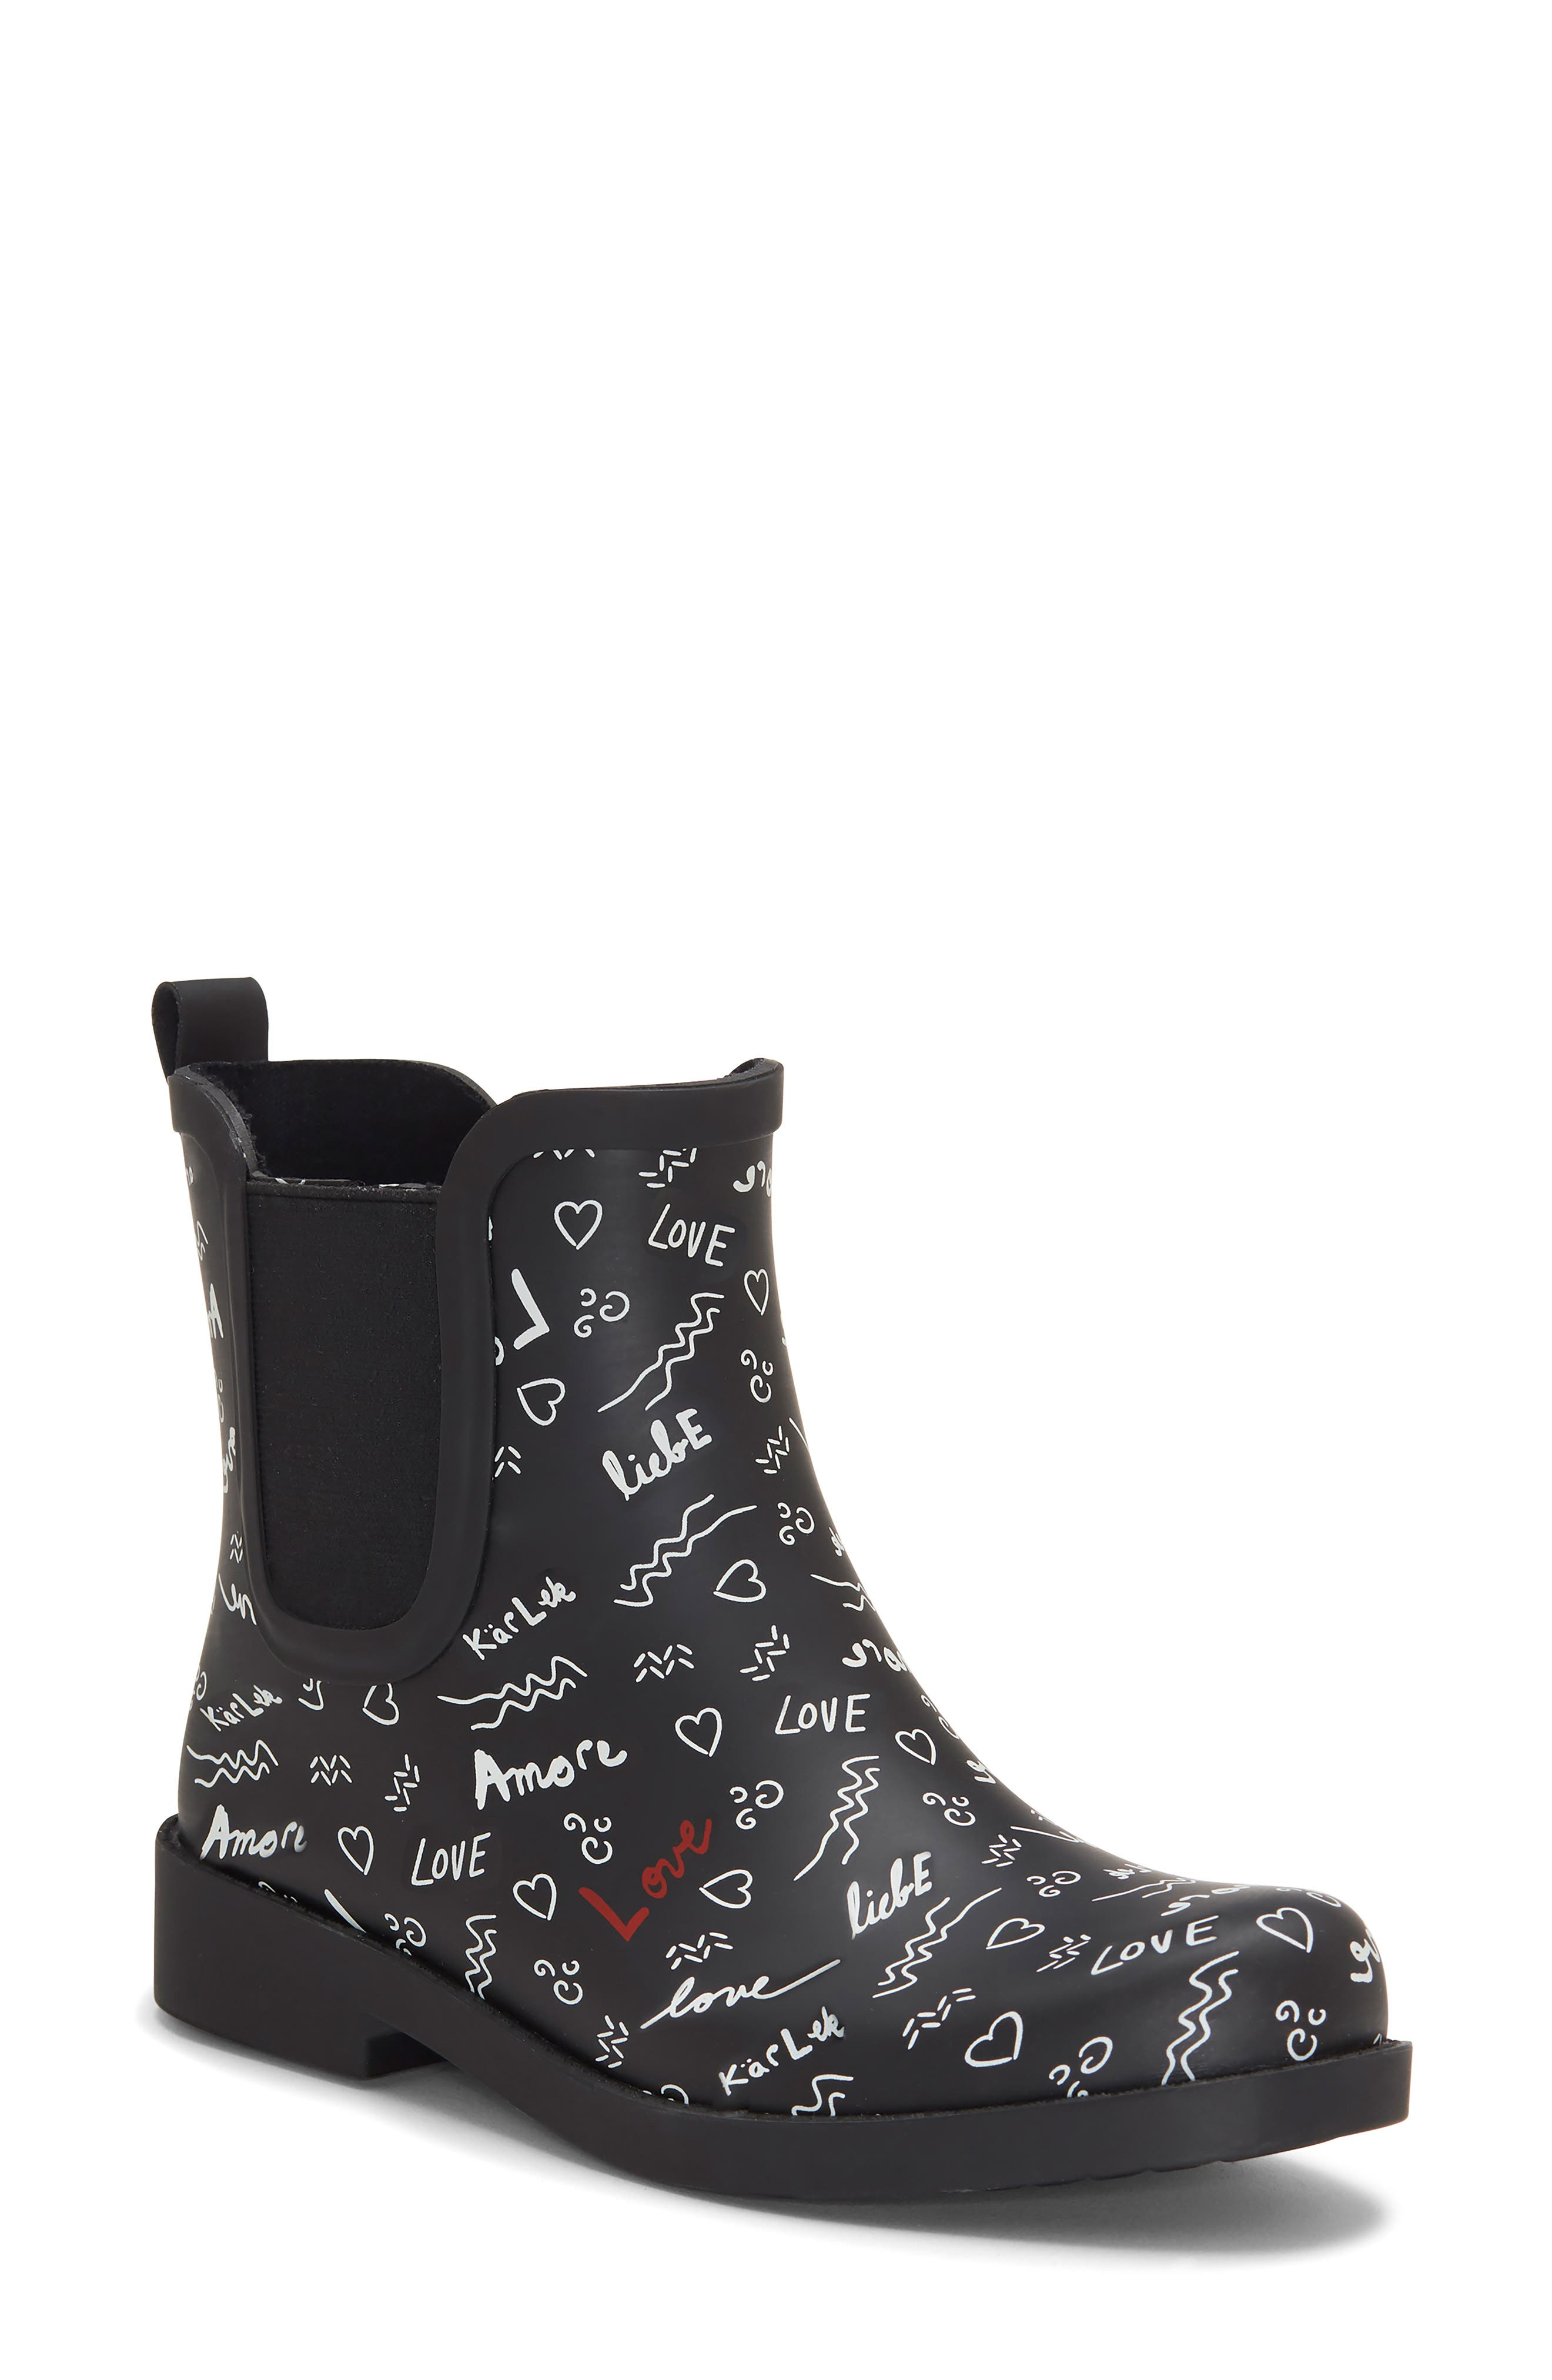 ED ELLEN DEGENERES, Wallita Rain Boot, Main thumbnail 1, color, BLACK/ WHITE MATTE RUBBER